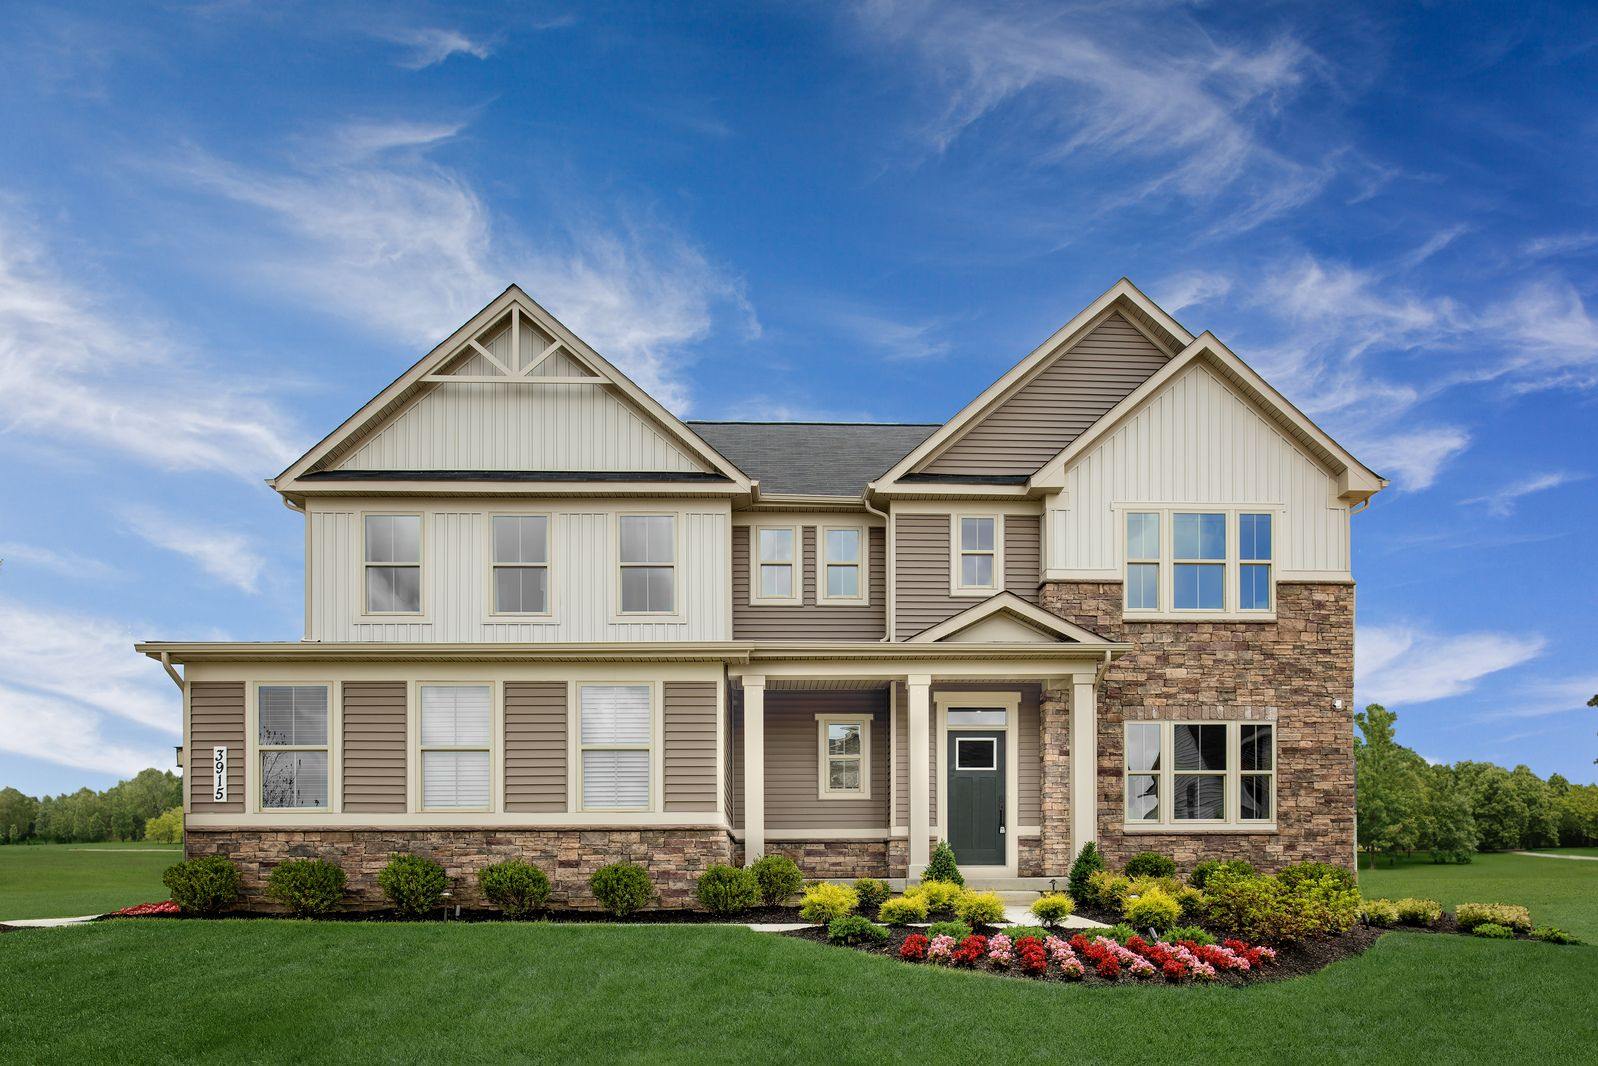 Welcome to Danville Estates:Move up and get all the space you need inside and out here at The Preserve at Danville Estates.Click HERE to schedule your visit.